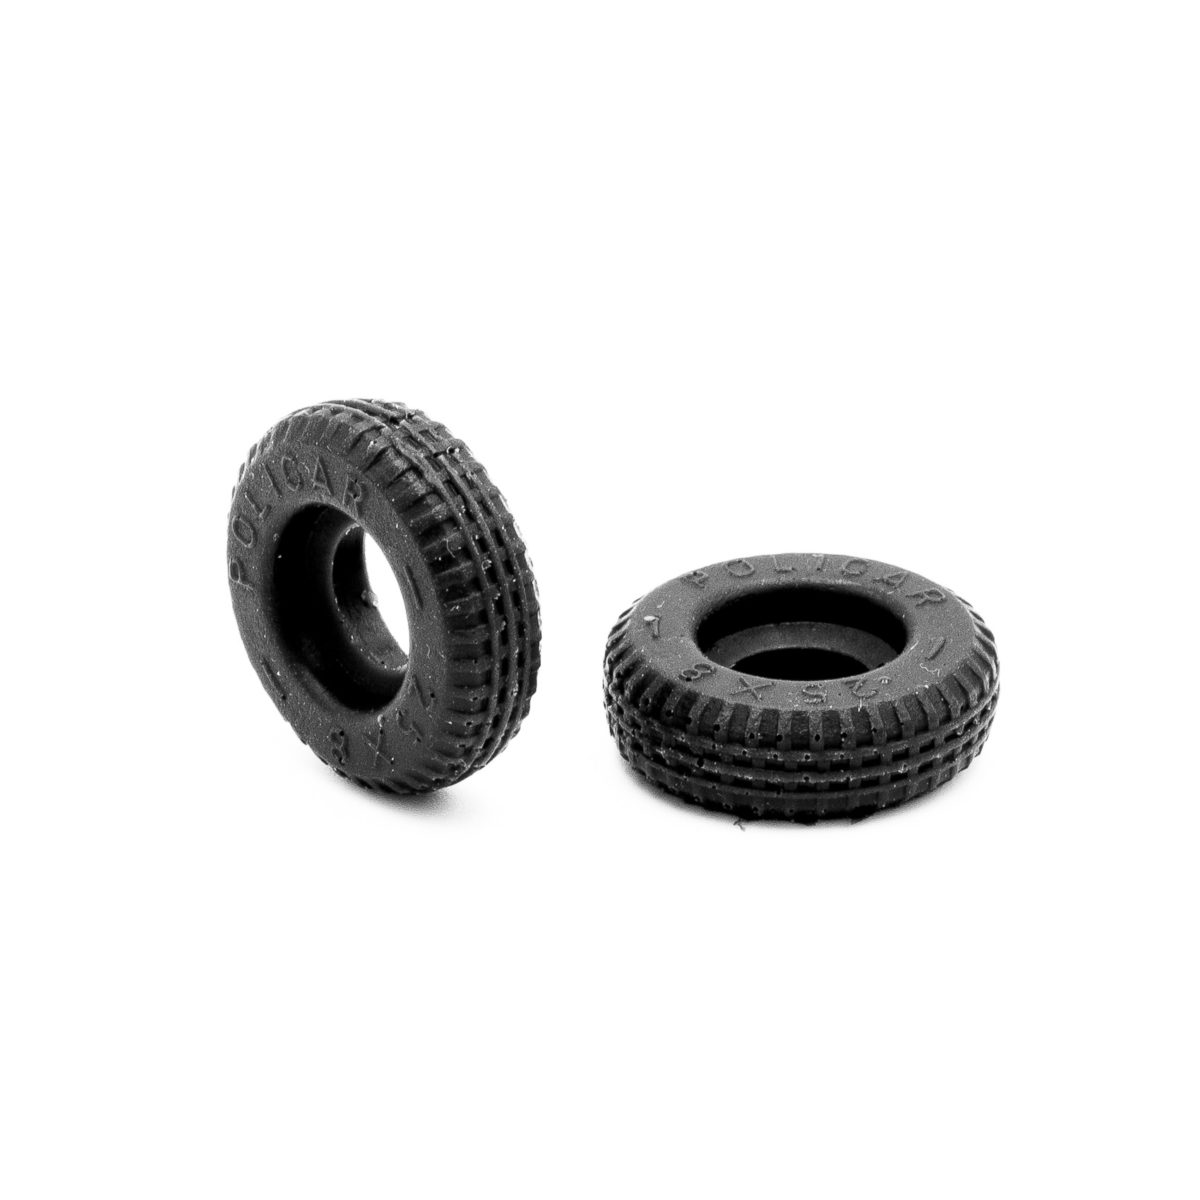 Rear Slot Car Tires for F1 60s Policar Steering Wheels 1:32